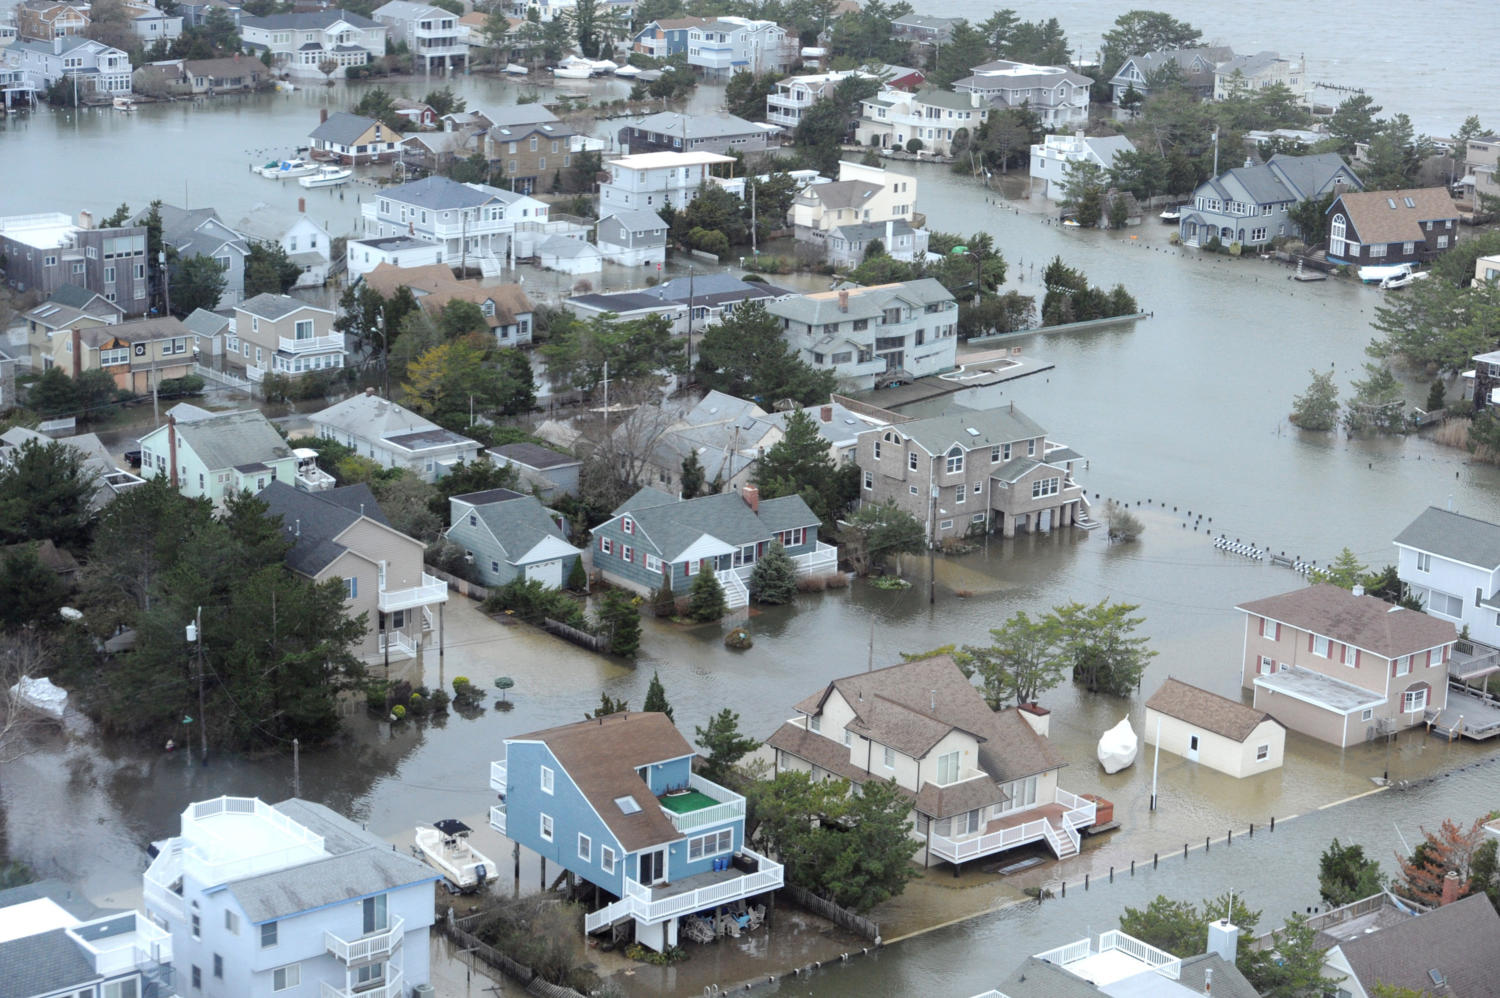 A portion of Harvey Cedars, on the bay side of Long Beach Island on the New Jersey shore, is under water, October 30, 2012, after Hurricane Sandy blew across the New Jersey barrier islands. This portion of the road is in Harvey Cedar. (Clem Murray/Philadelphia Inquirer/MCT)